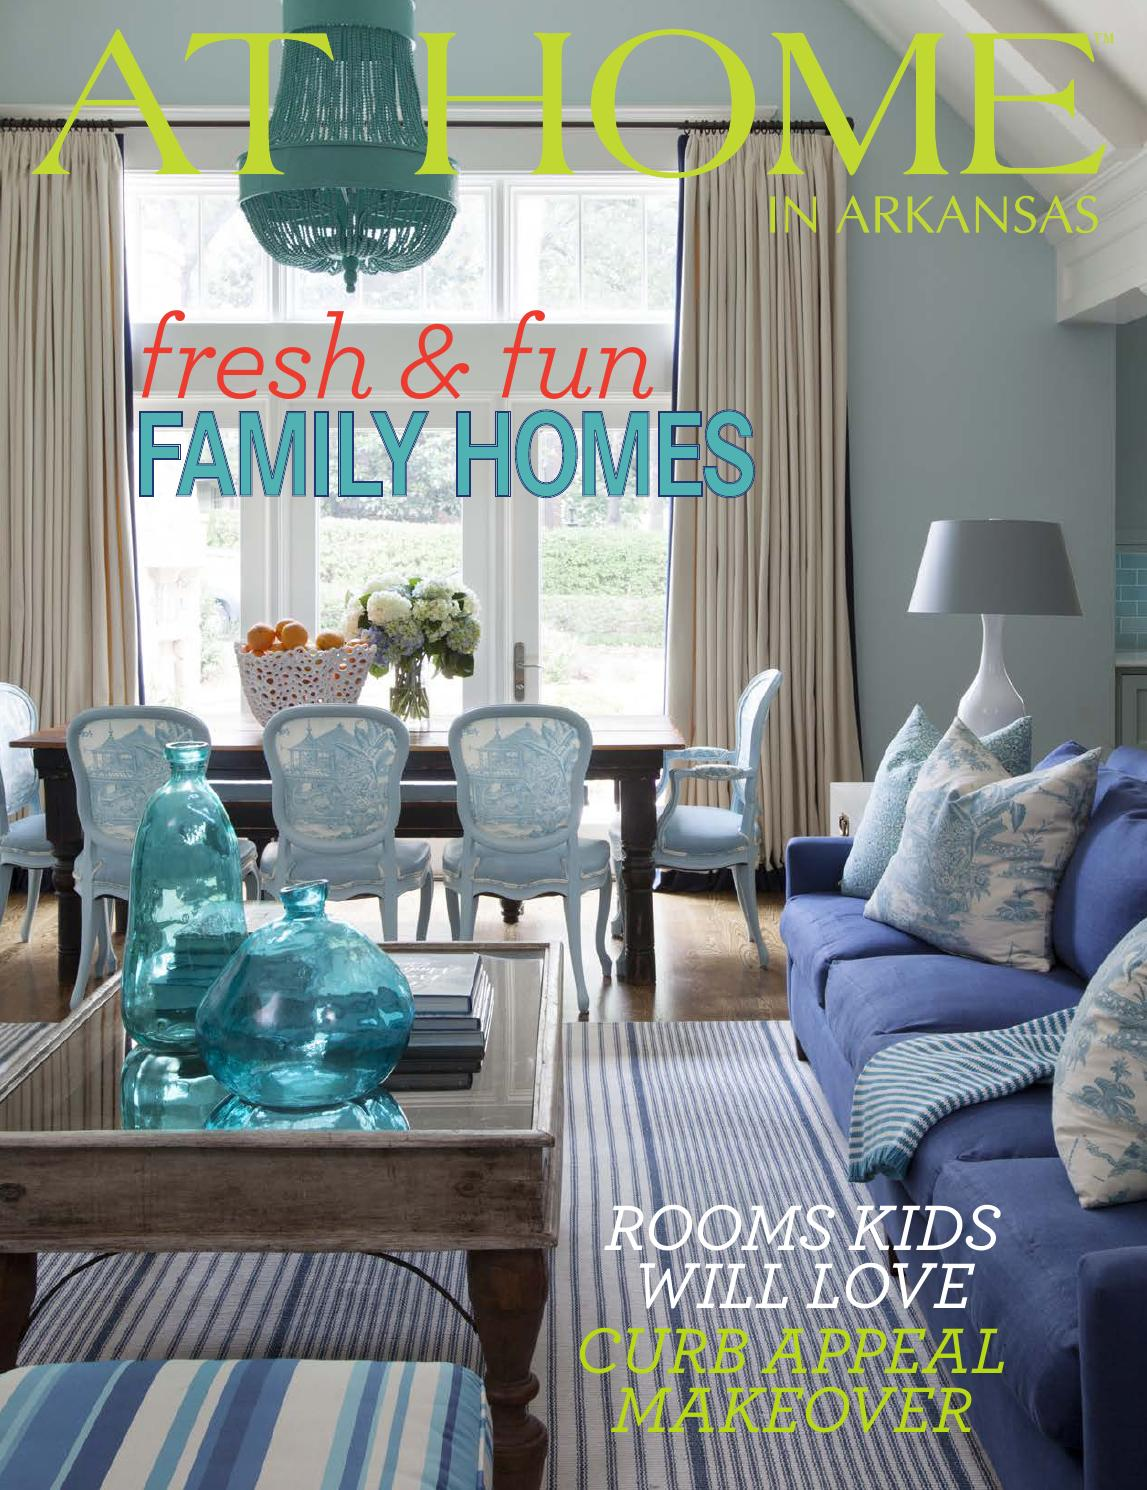 At Home In Arkansas, August 2014 By Network Communications Inc.   Issuu